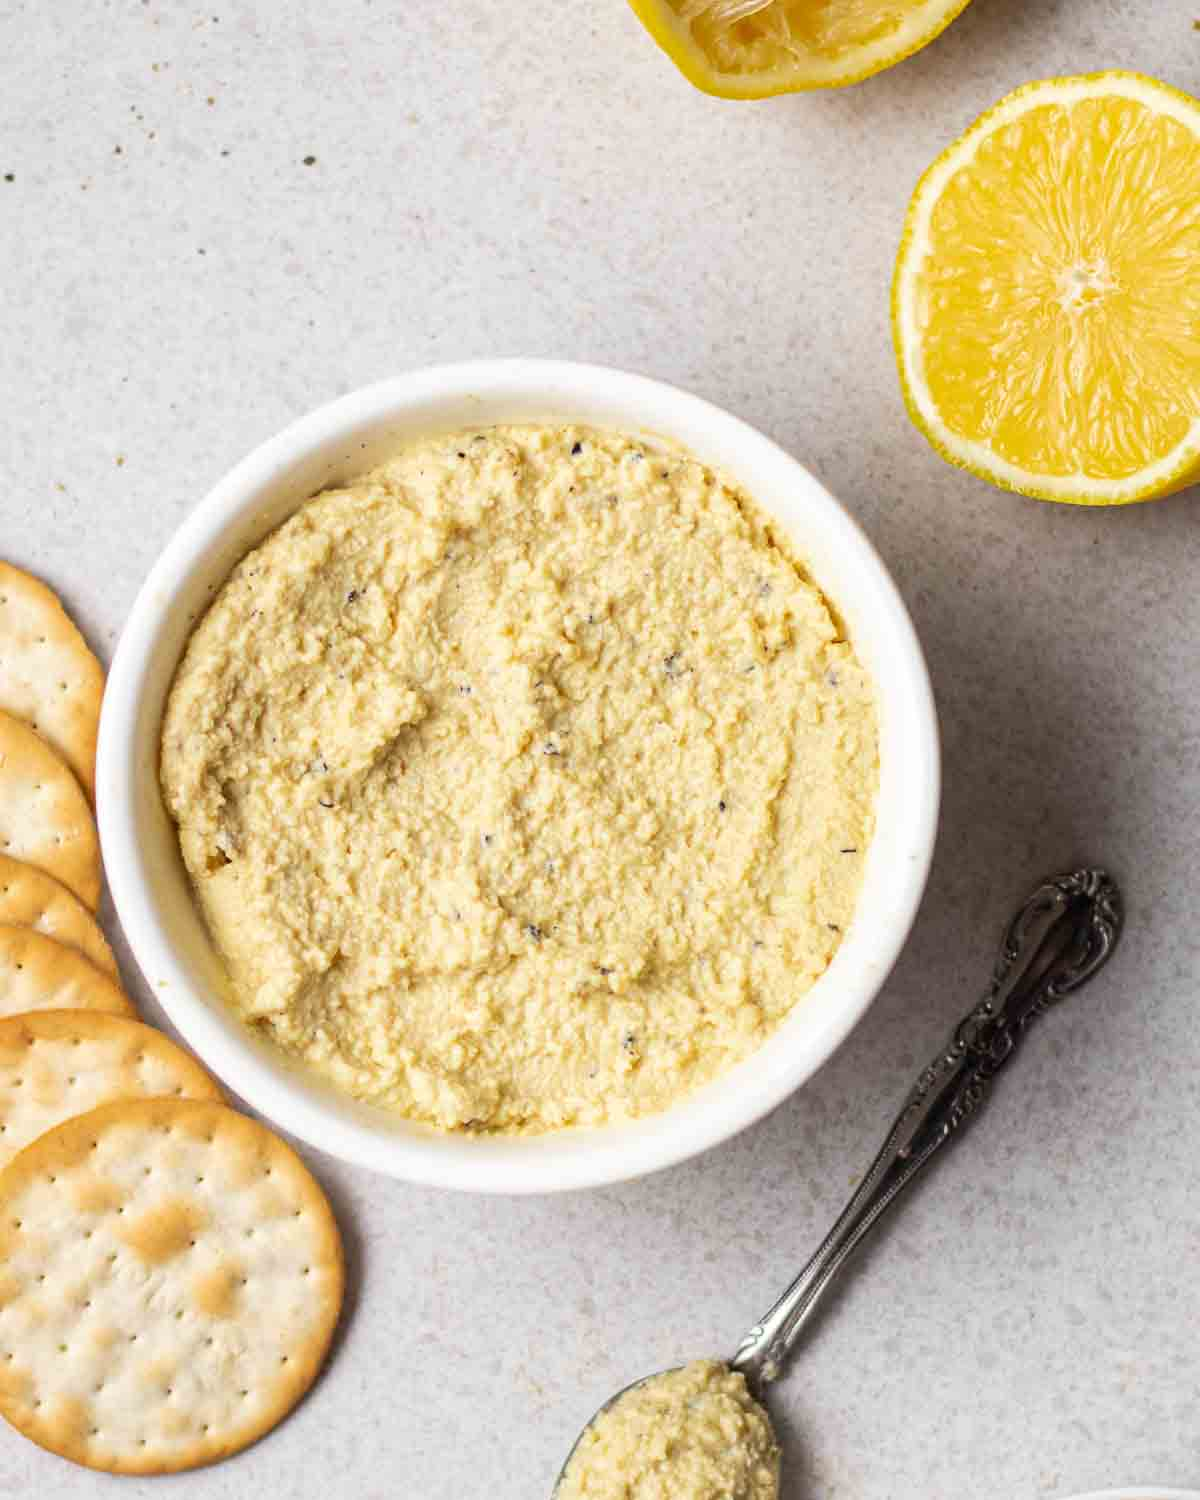 A bowl of tofu cashew ricotta with a spoonful of ricotta, crackers and lemon halves beside.